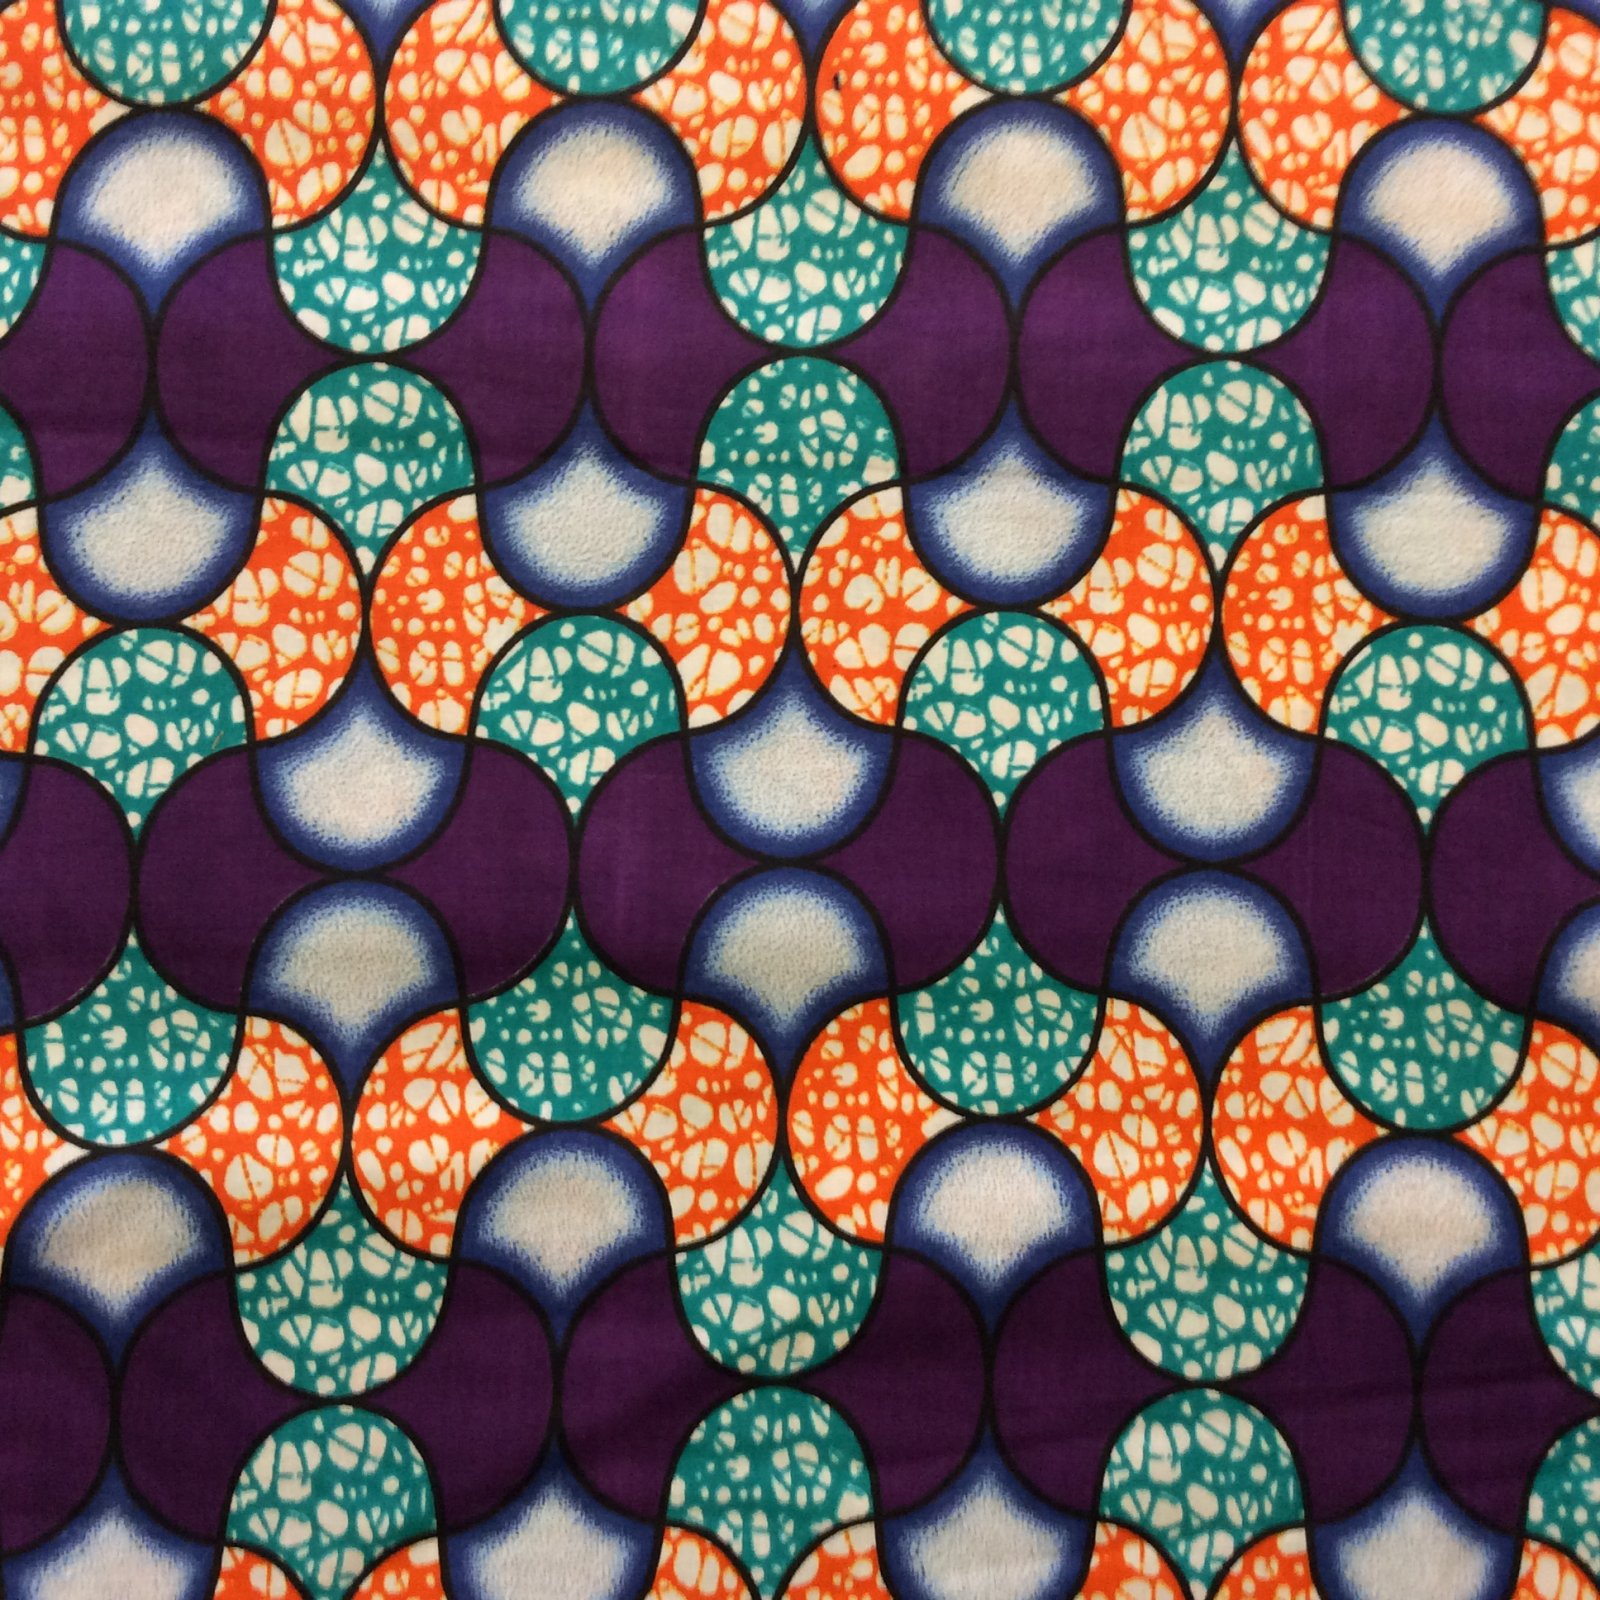 African Wax Print Cloth Teal Purple and Orange Graphic Cotton Fabric WP013